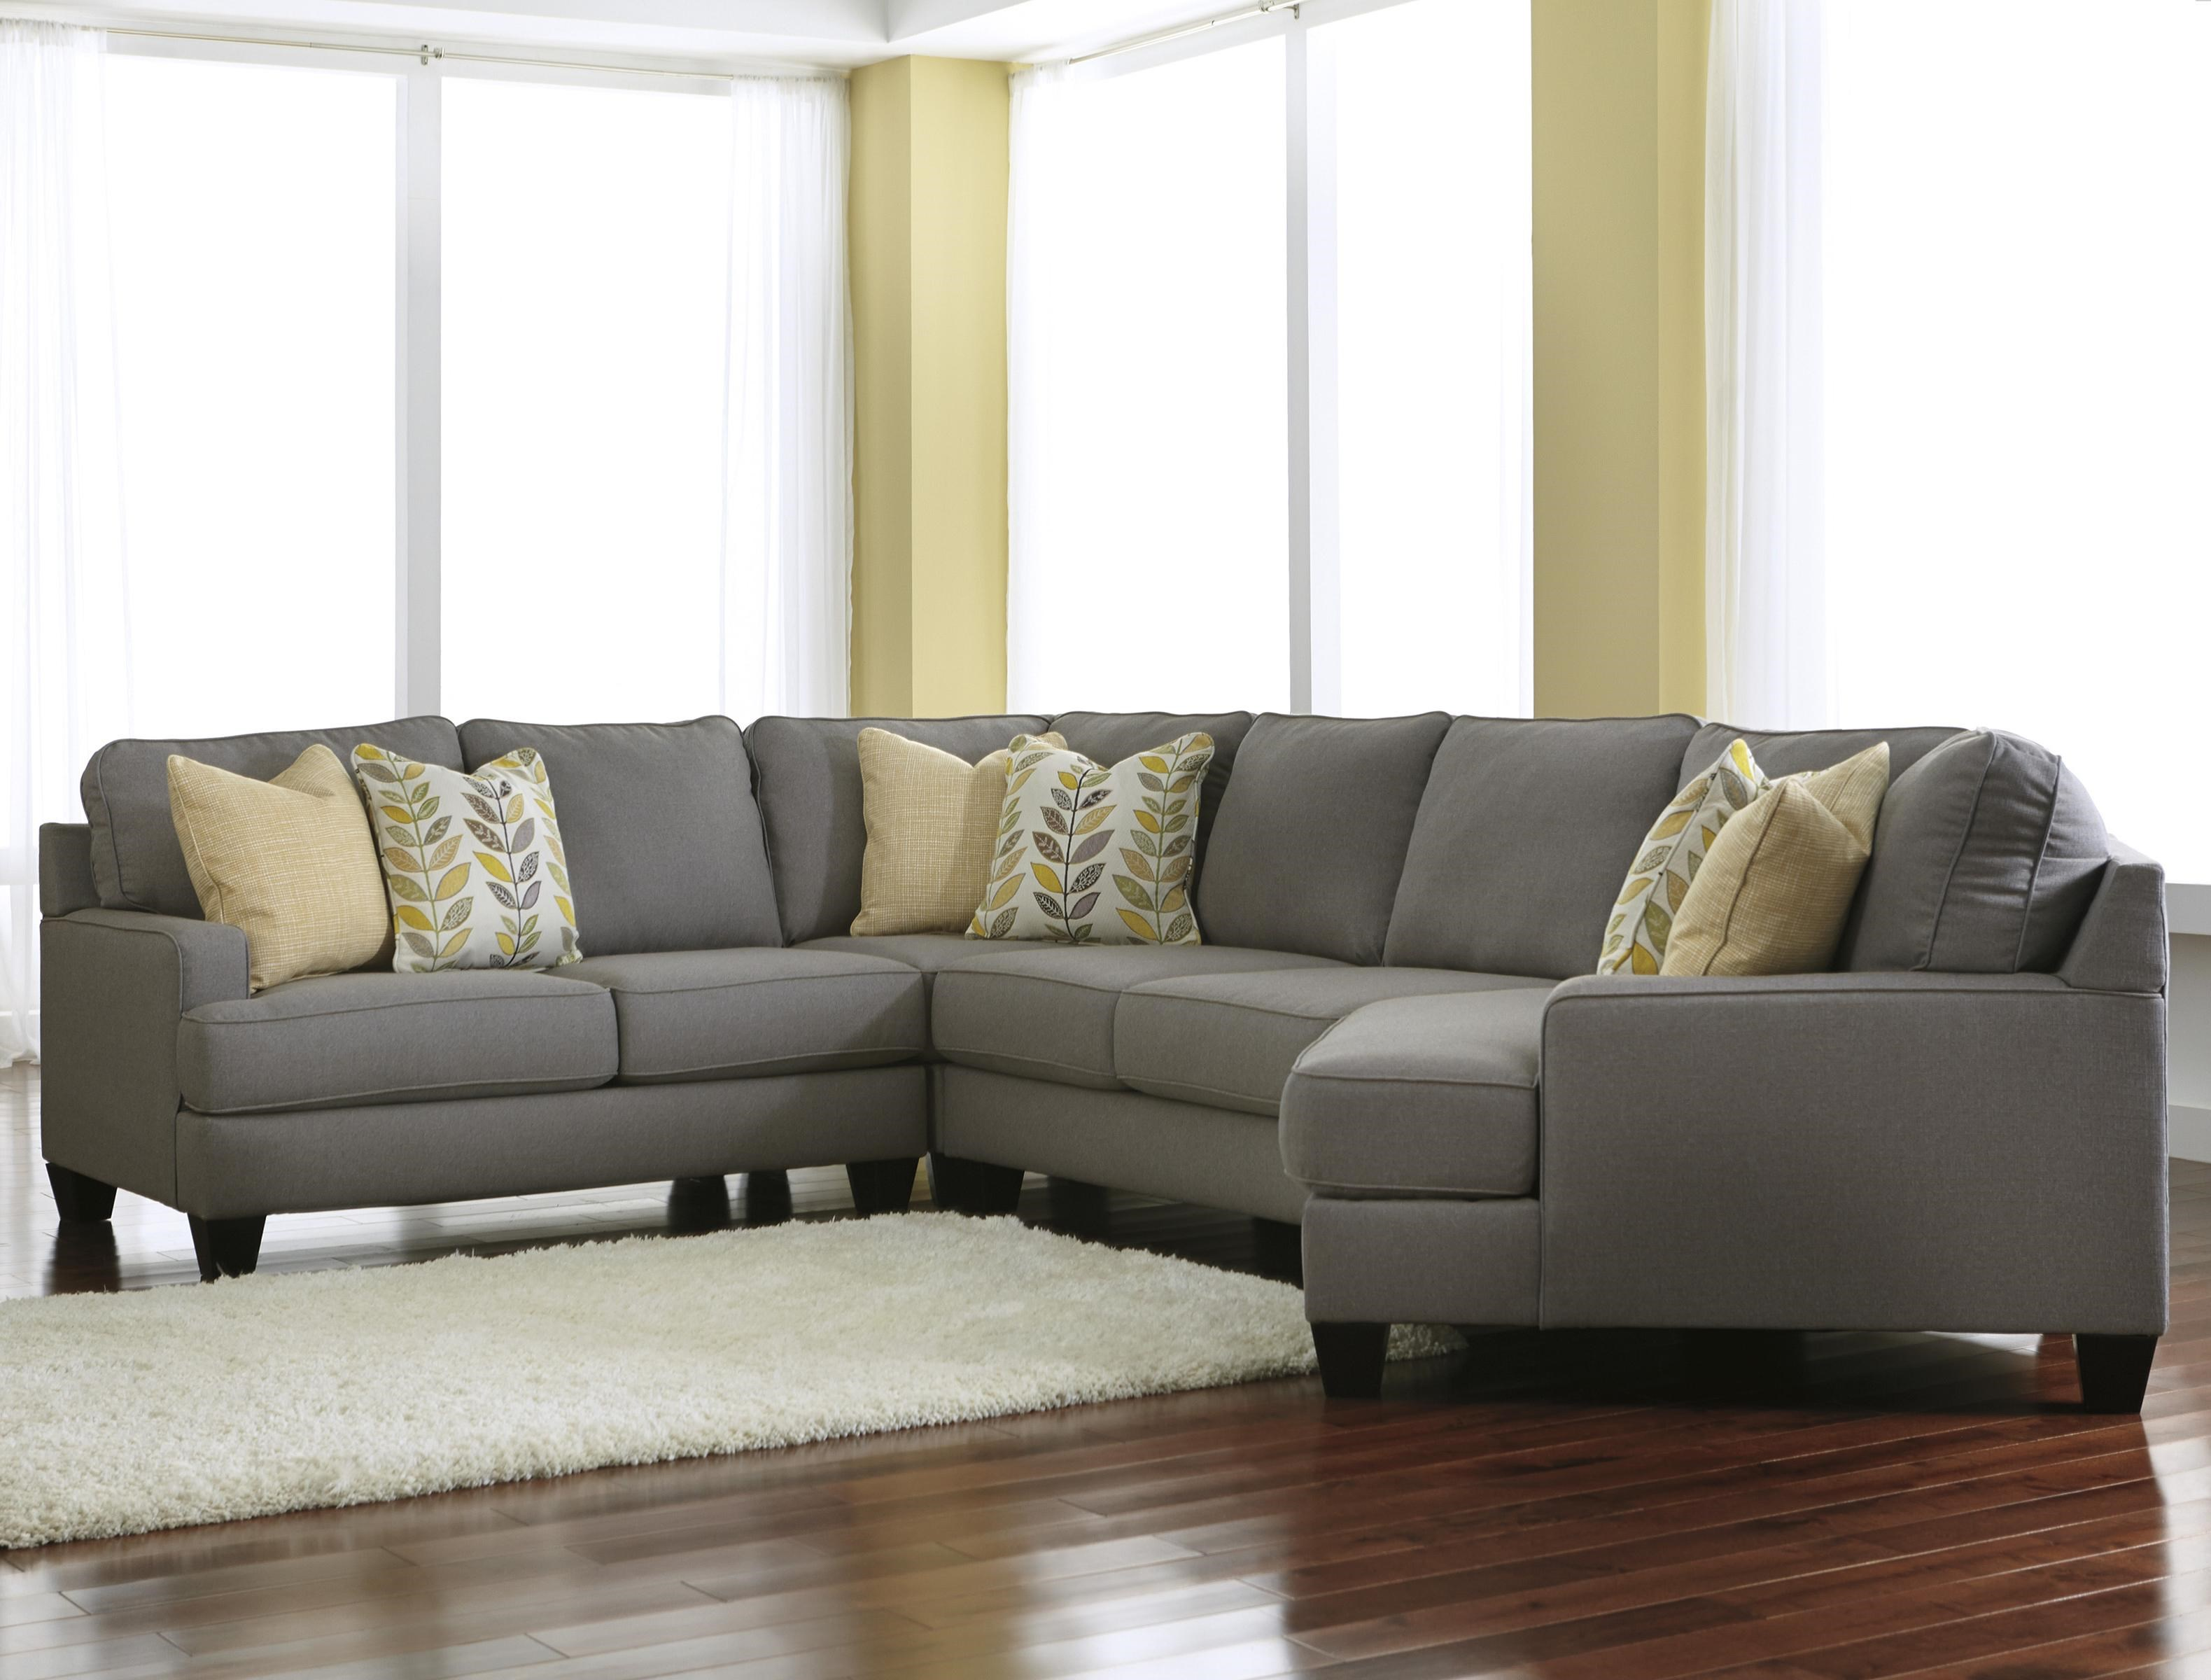 Merveilleux Signature Design By Ashley Chamberly   Alloy4 Piece Sectional Sofa With  Right Cuddler ...